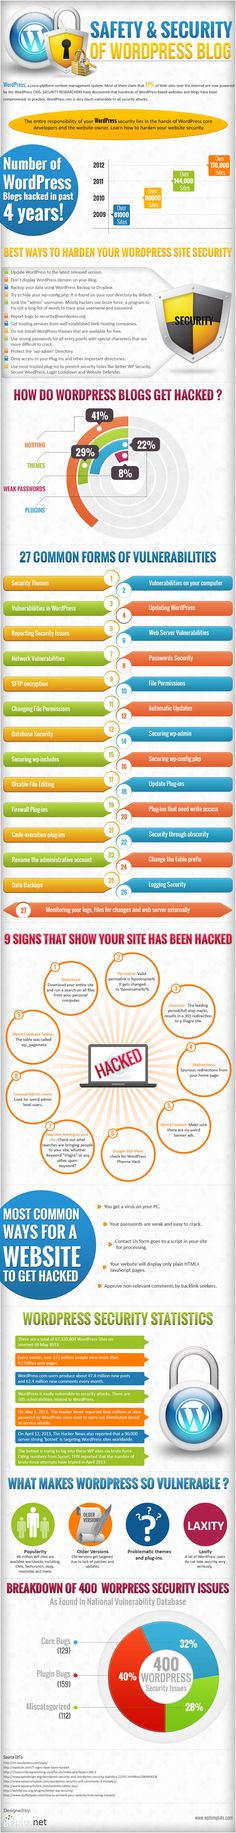 Safety and Security of a WordPress Blog an #Infographic